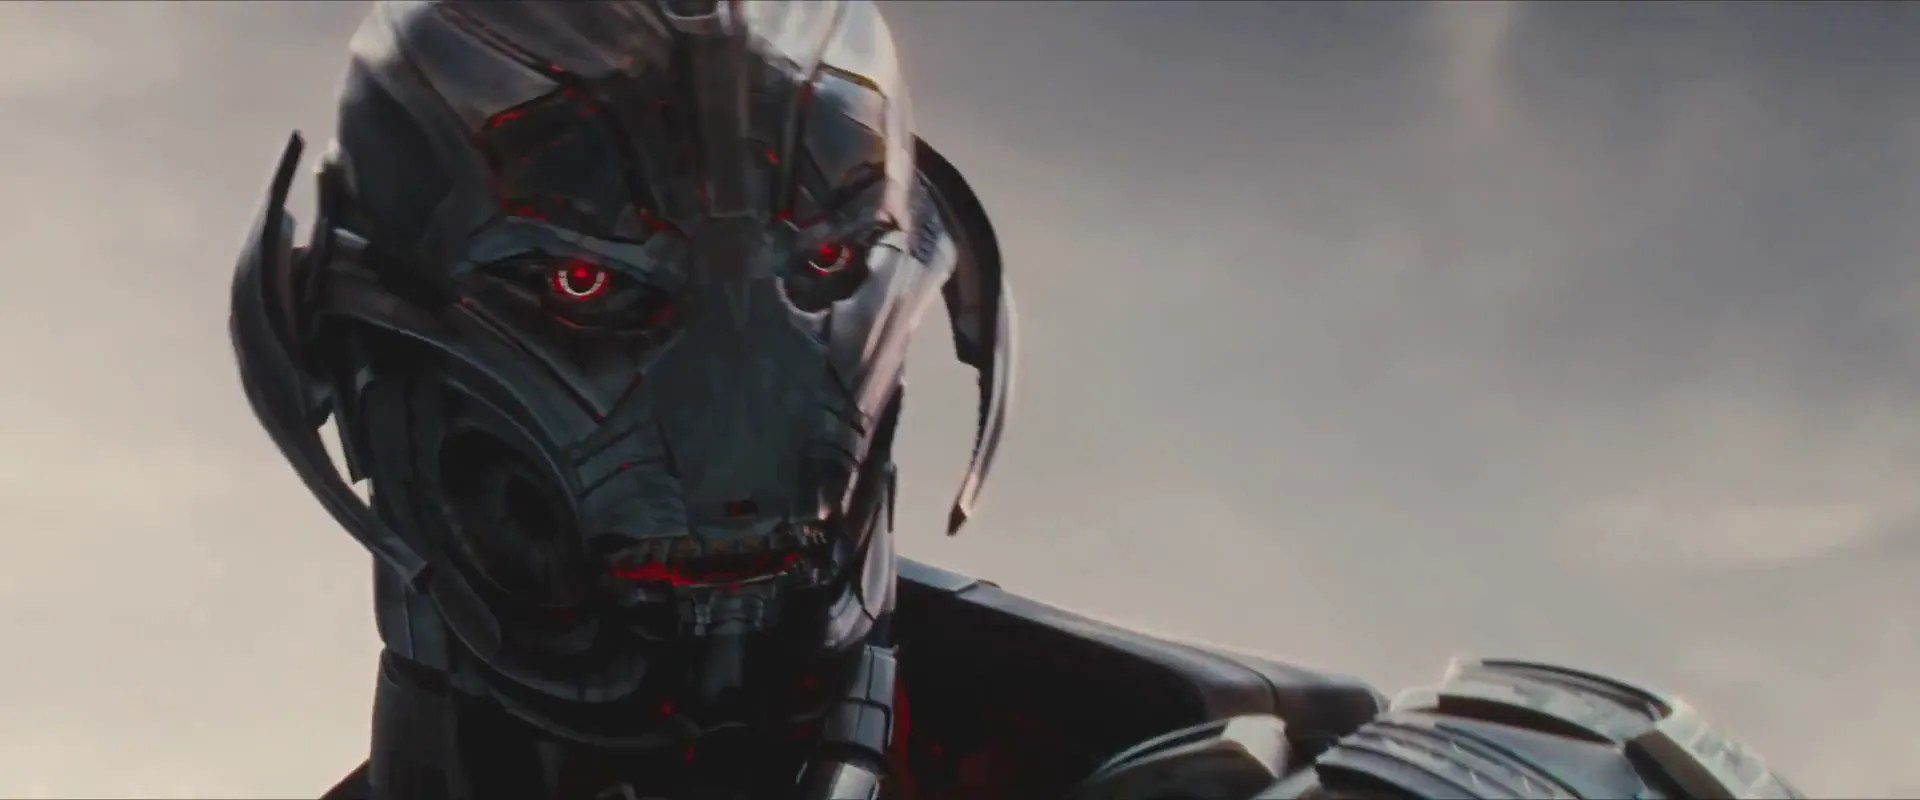 https://i0.wp.com/cdn.collider.com/wp-content/uploads/avengers-age-of-ultron-trailer-screengrab-32-ultron.png